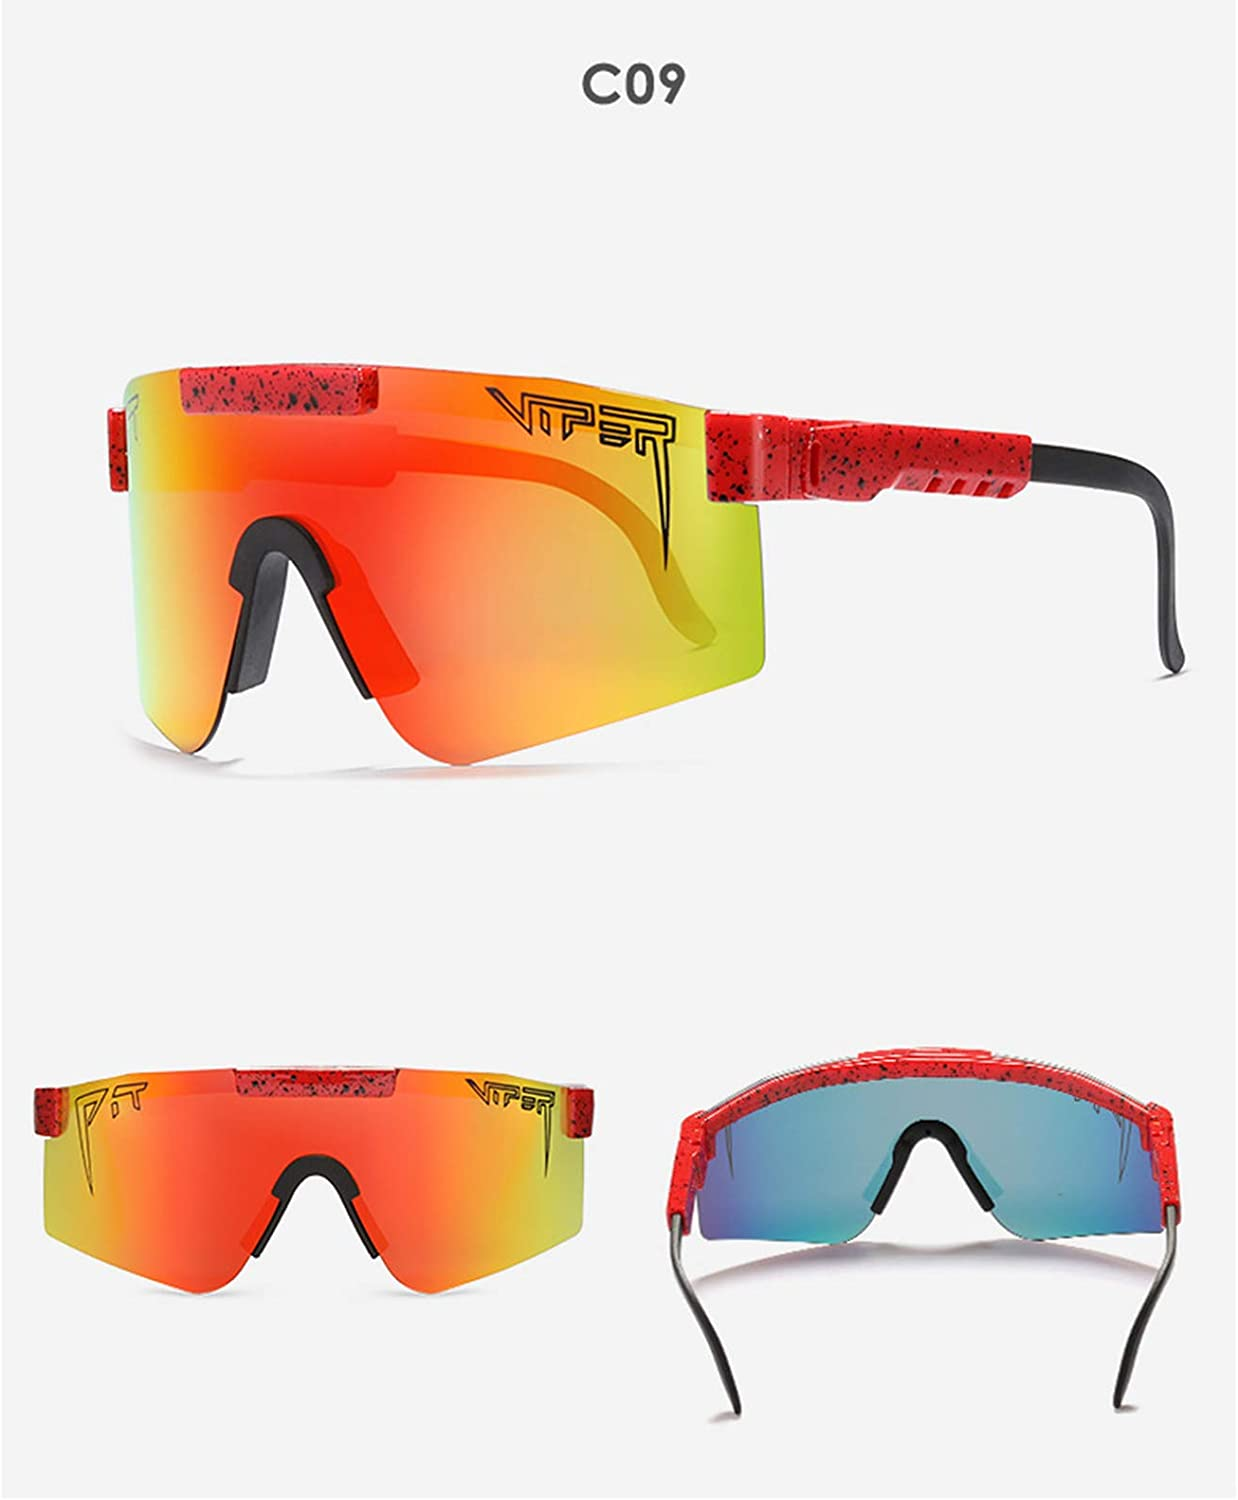 Wmbzxh Pit Viper Polarized Sunglasses for Men and Women Cycling Driving Goggles Outdoor Windproof Uv Mirror Lenses wih Case